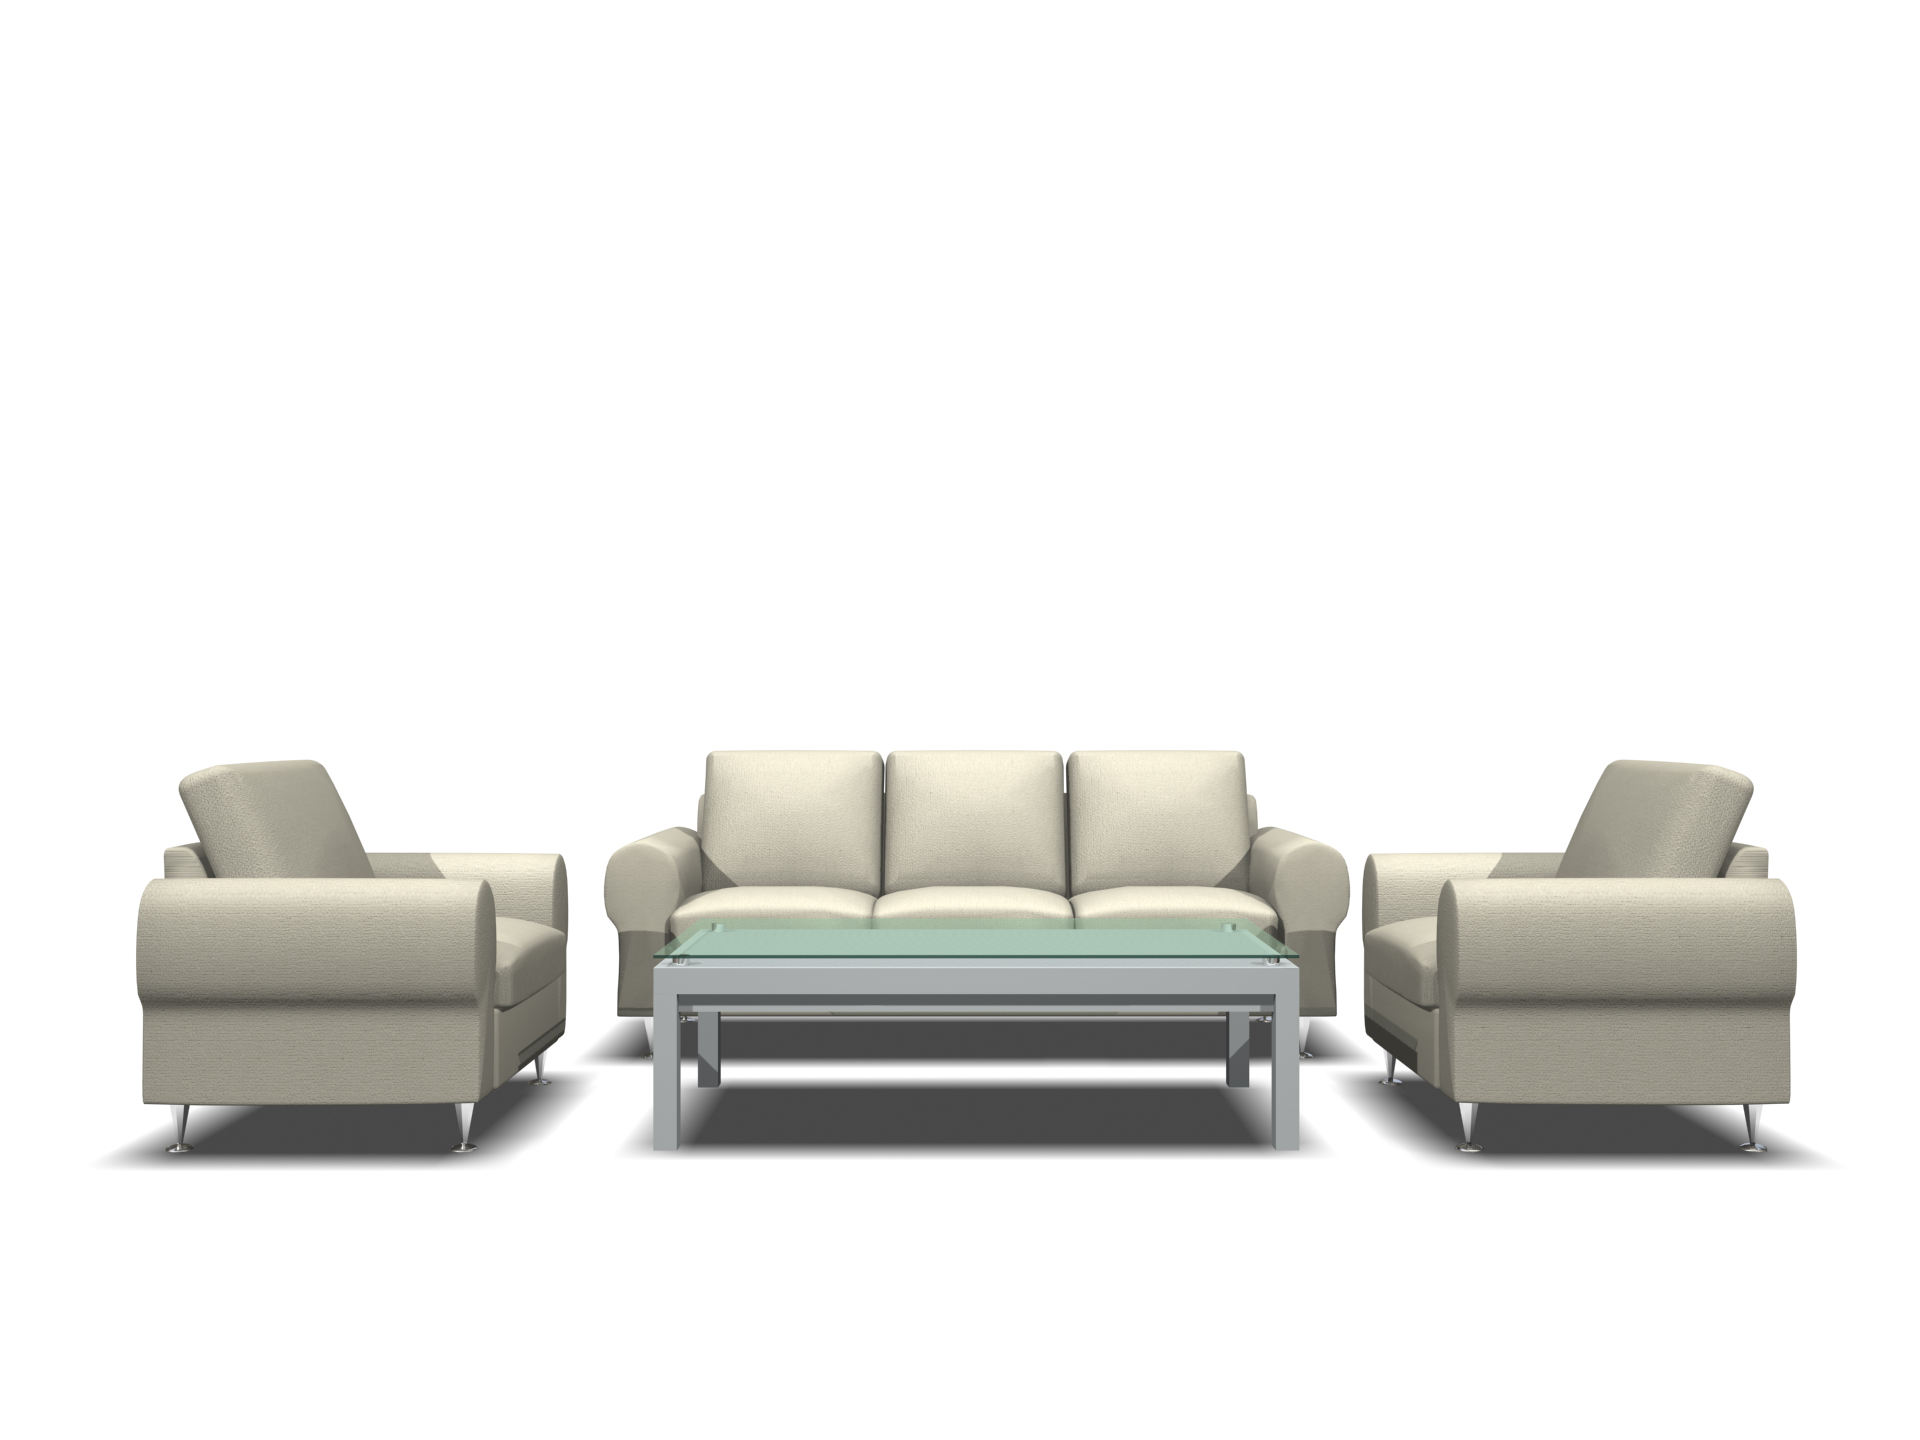 Furniture Sas 013 3d Model Download Free 3d Models Download